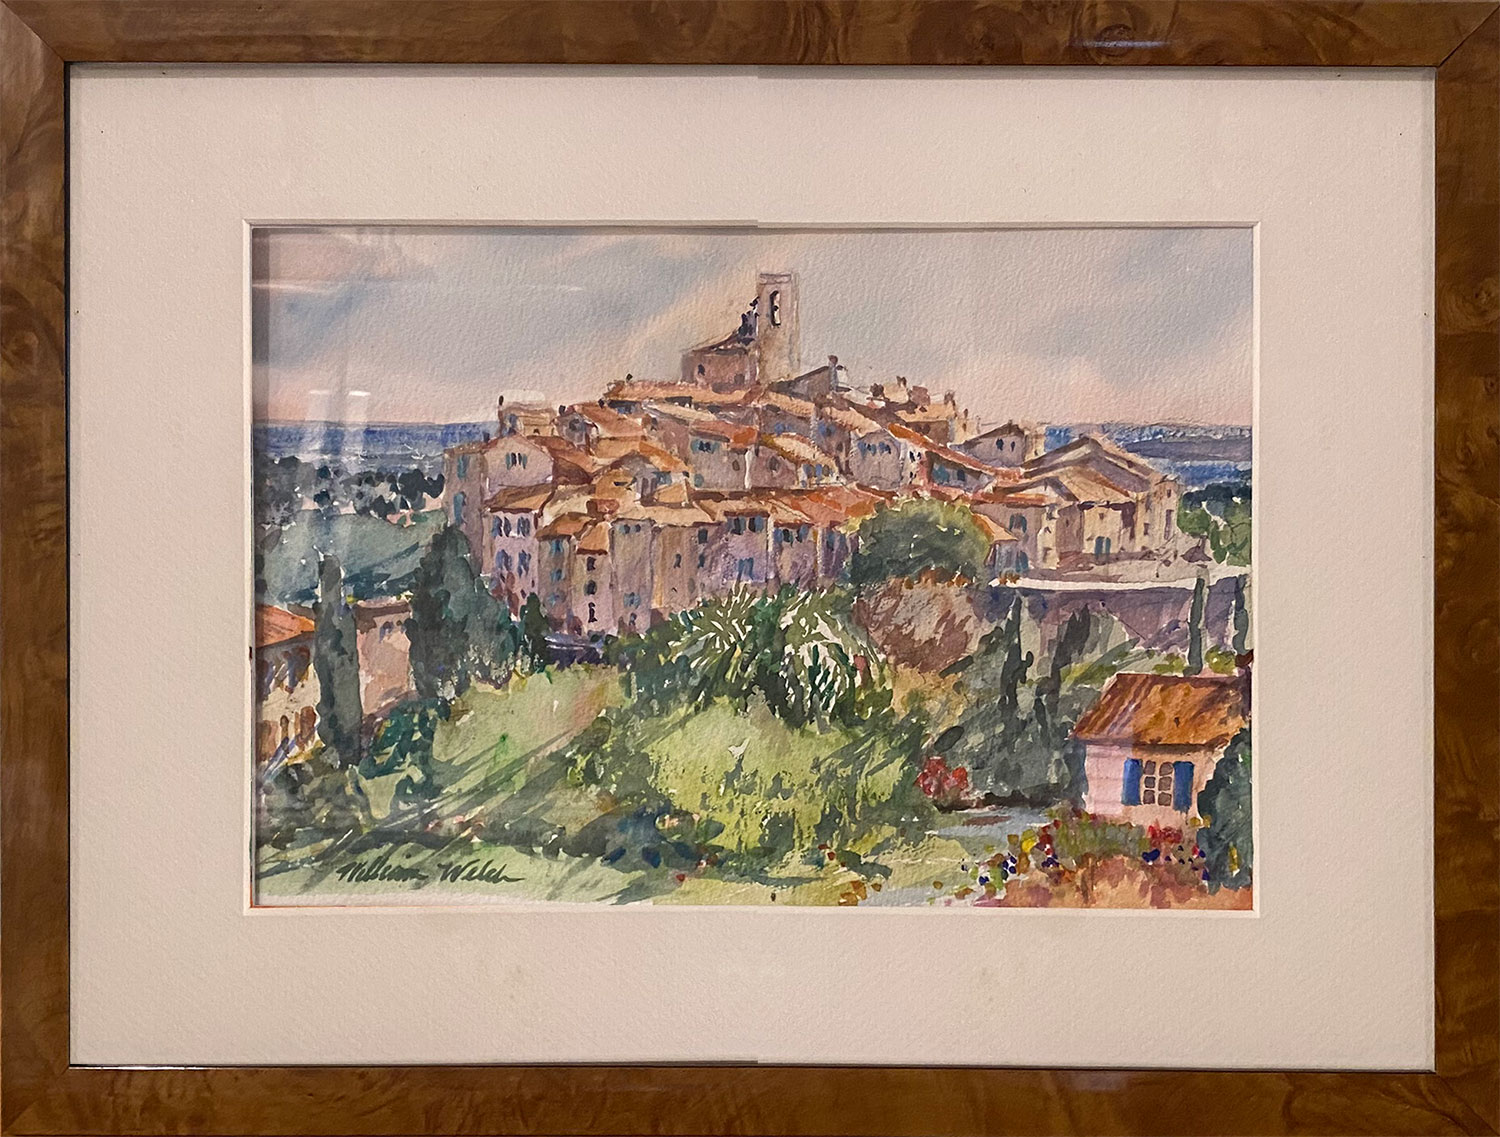 Cluster Dwellings With A View (Watercolor, 17 x 13)